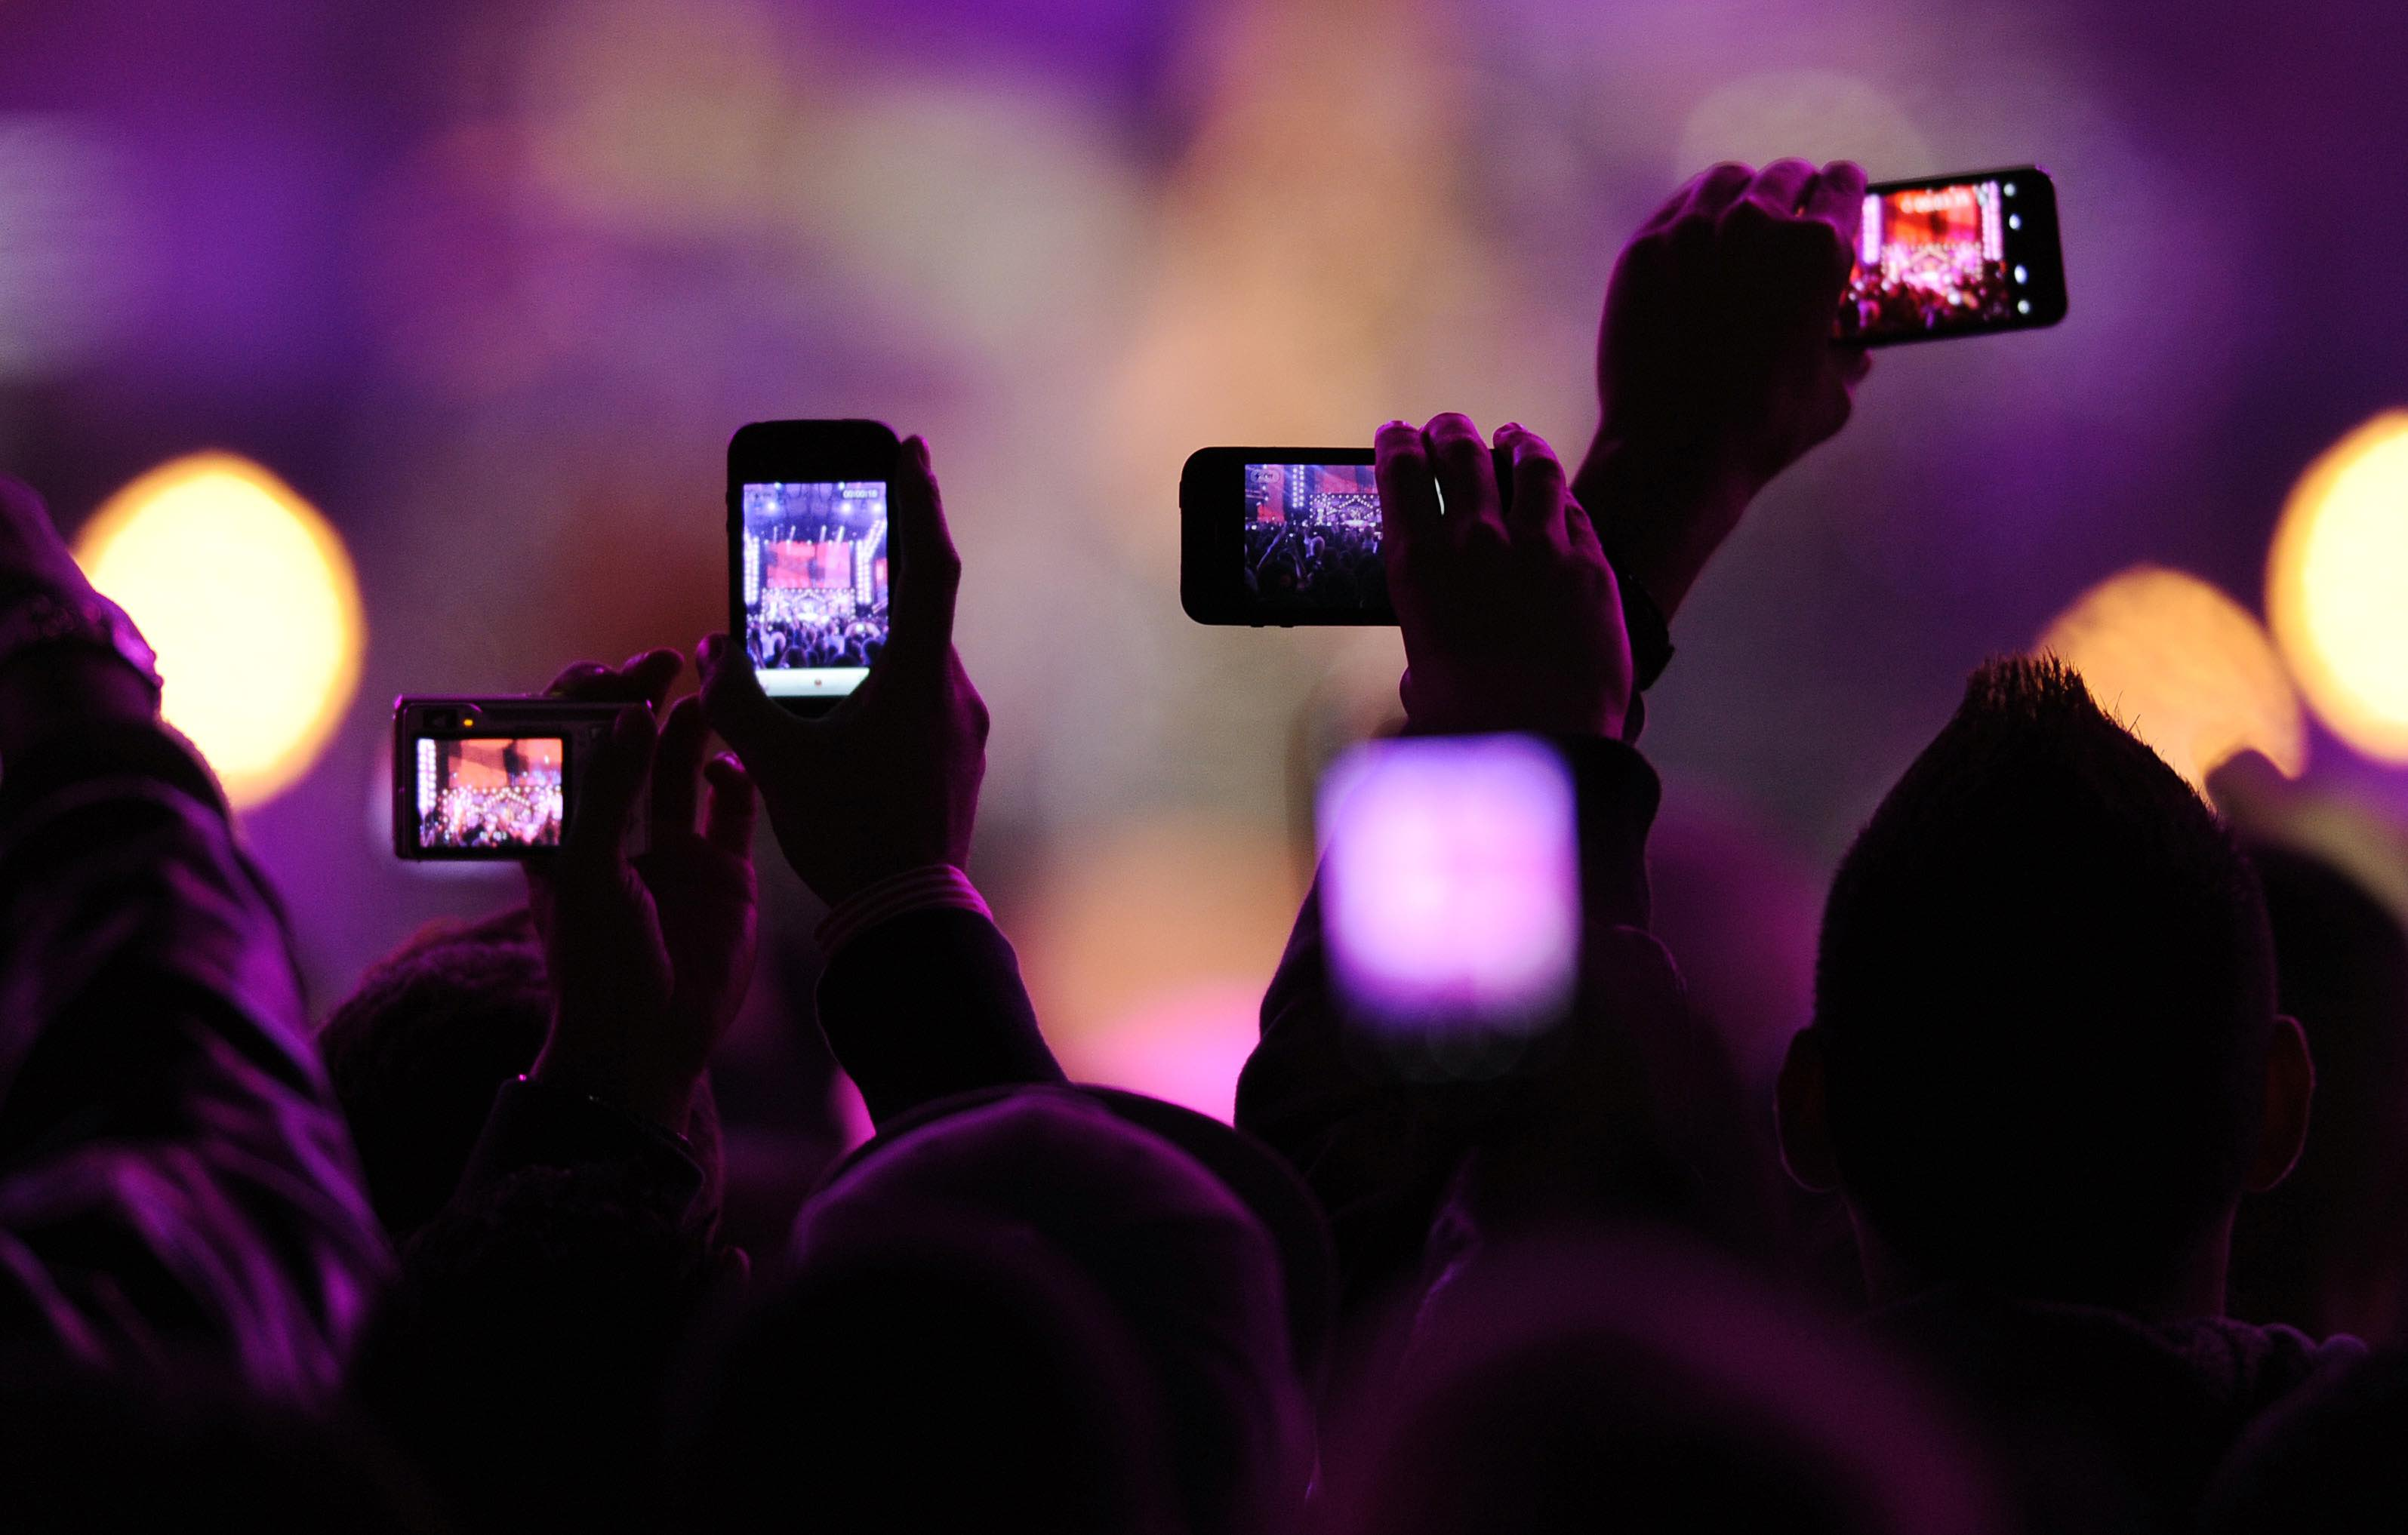 """Fans take photos with their mobile phones during the VH1 """"Divas Salute The Troops"""" show at the Marine Corps Air Station Miramar in San Diego, December 3, 2010. REUTERS/K.C. Alfred (UNITED STATES - Tags: ENTERTAINMENT SCI TECH IMAGES OF THE DAY) - RTXVDL9"""